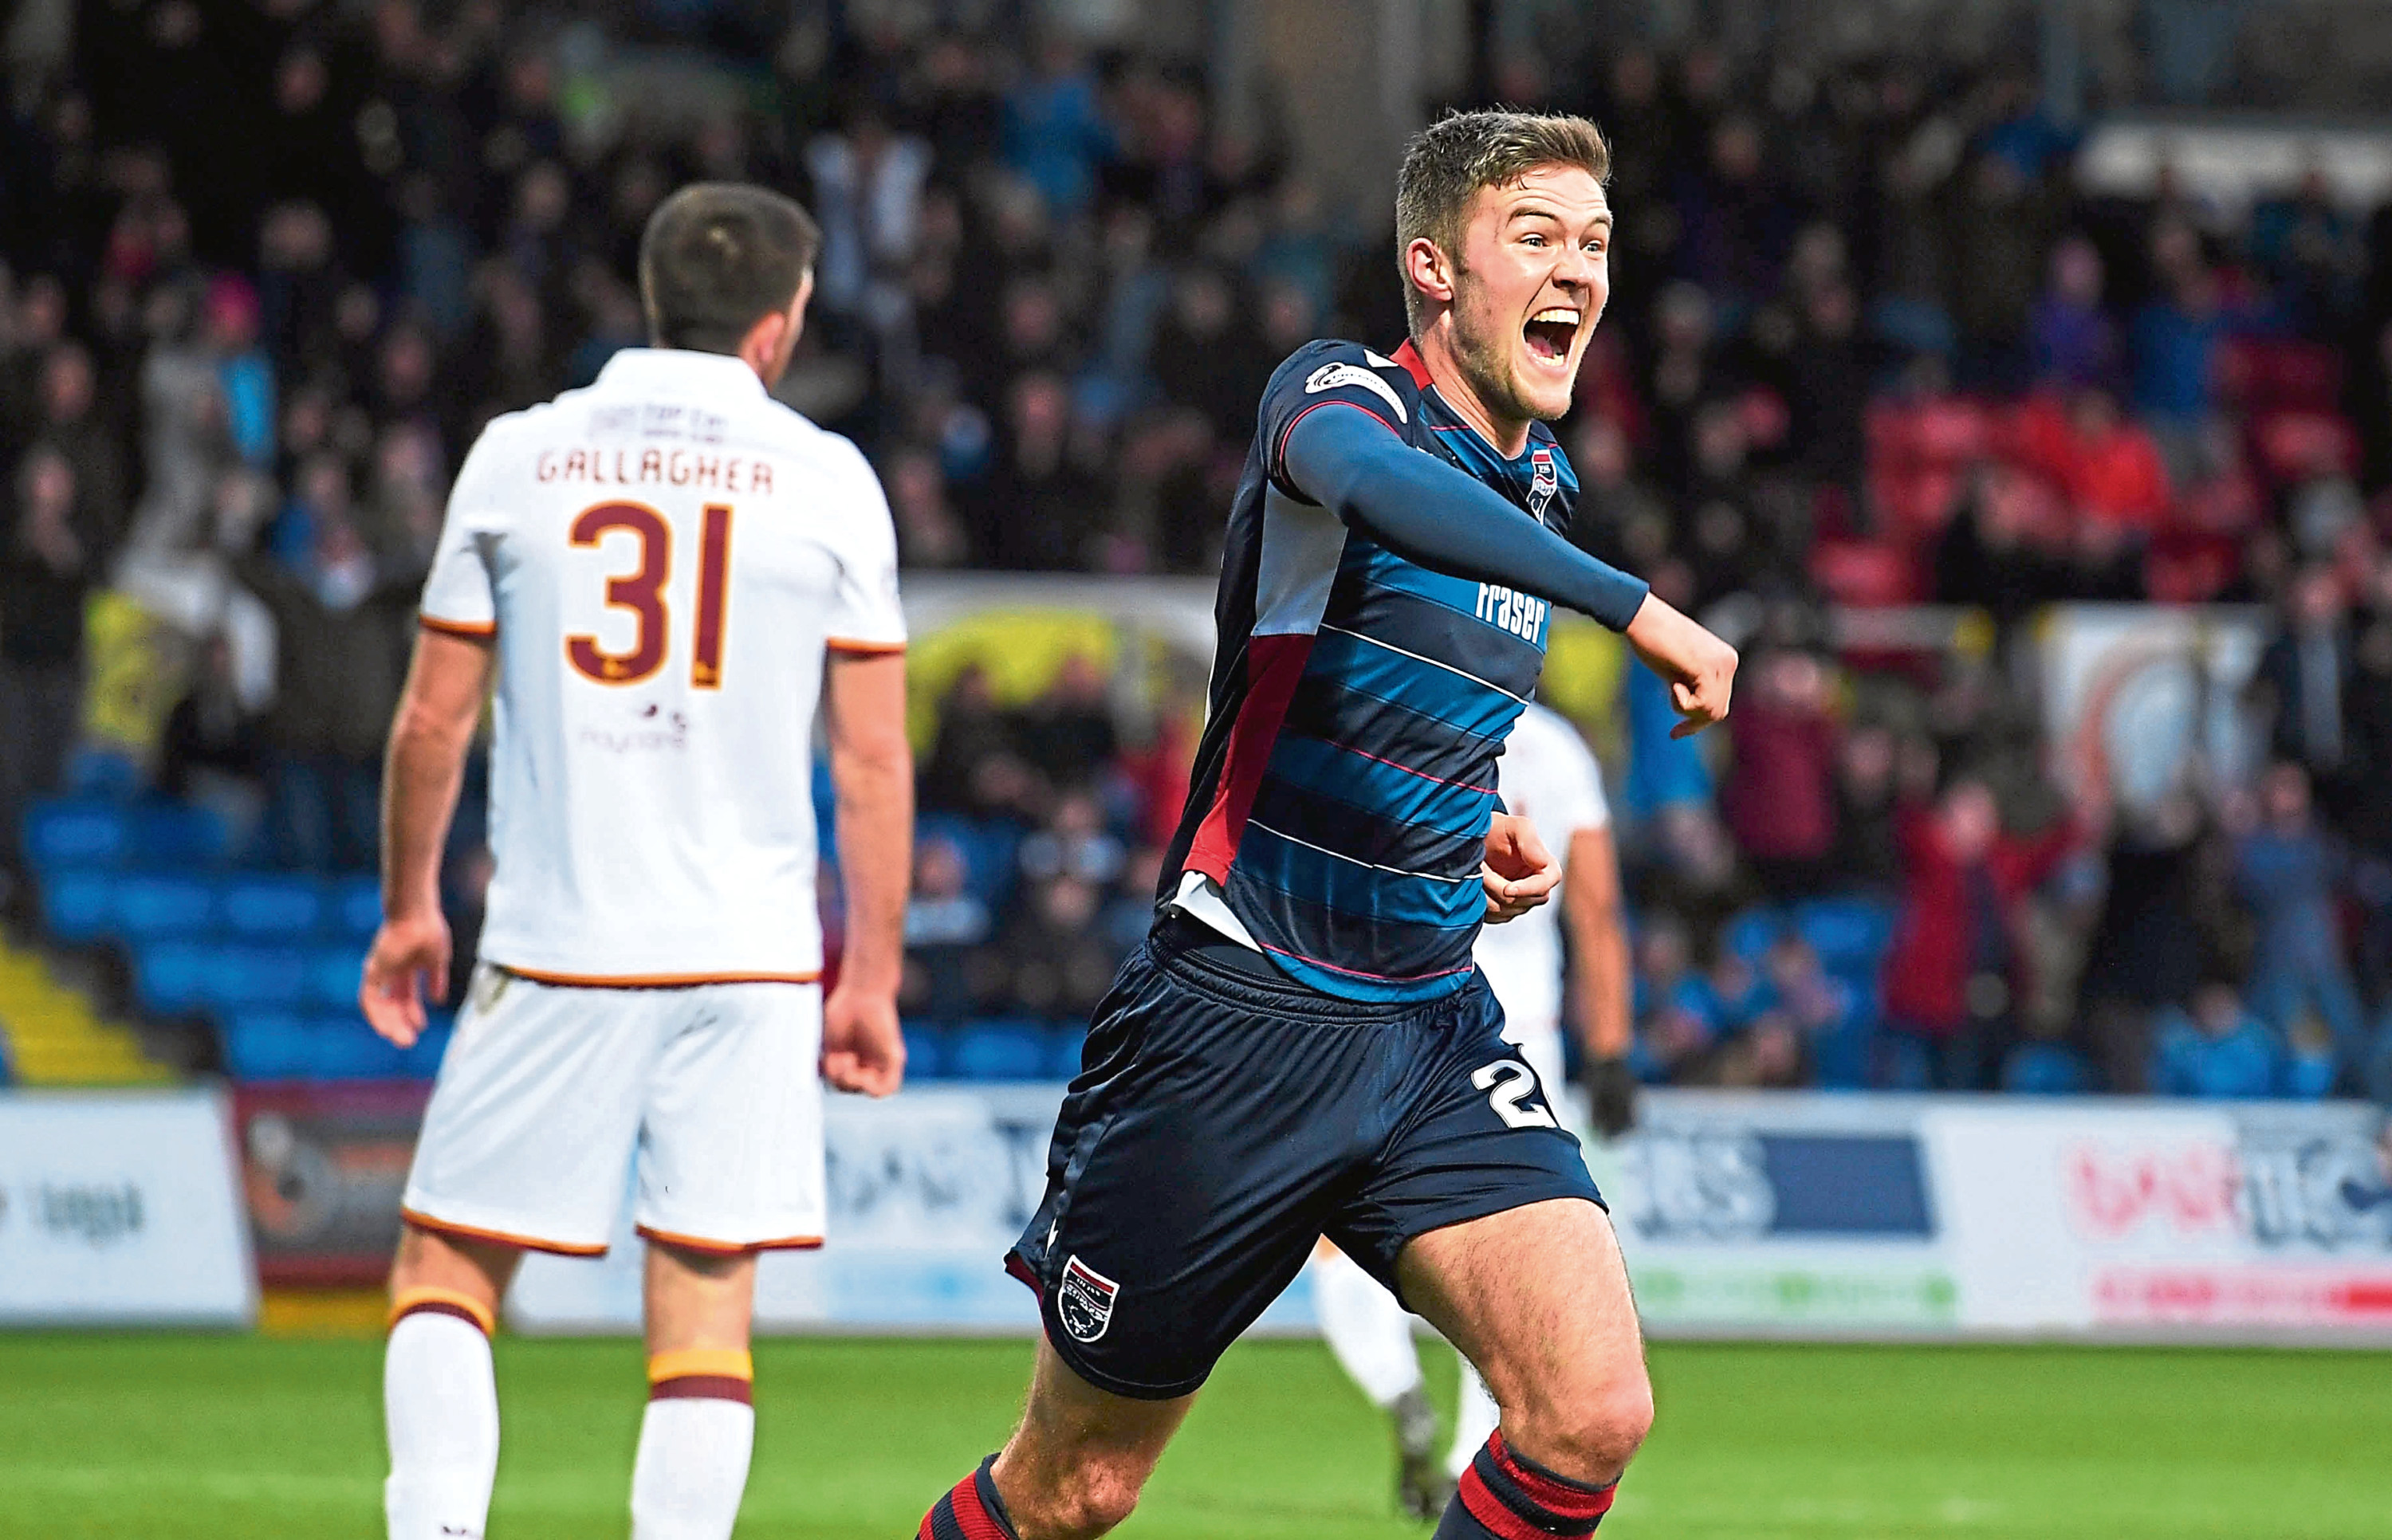 Ross County's Blair Spittal.